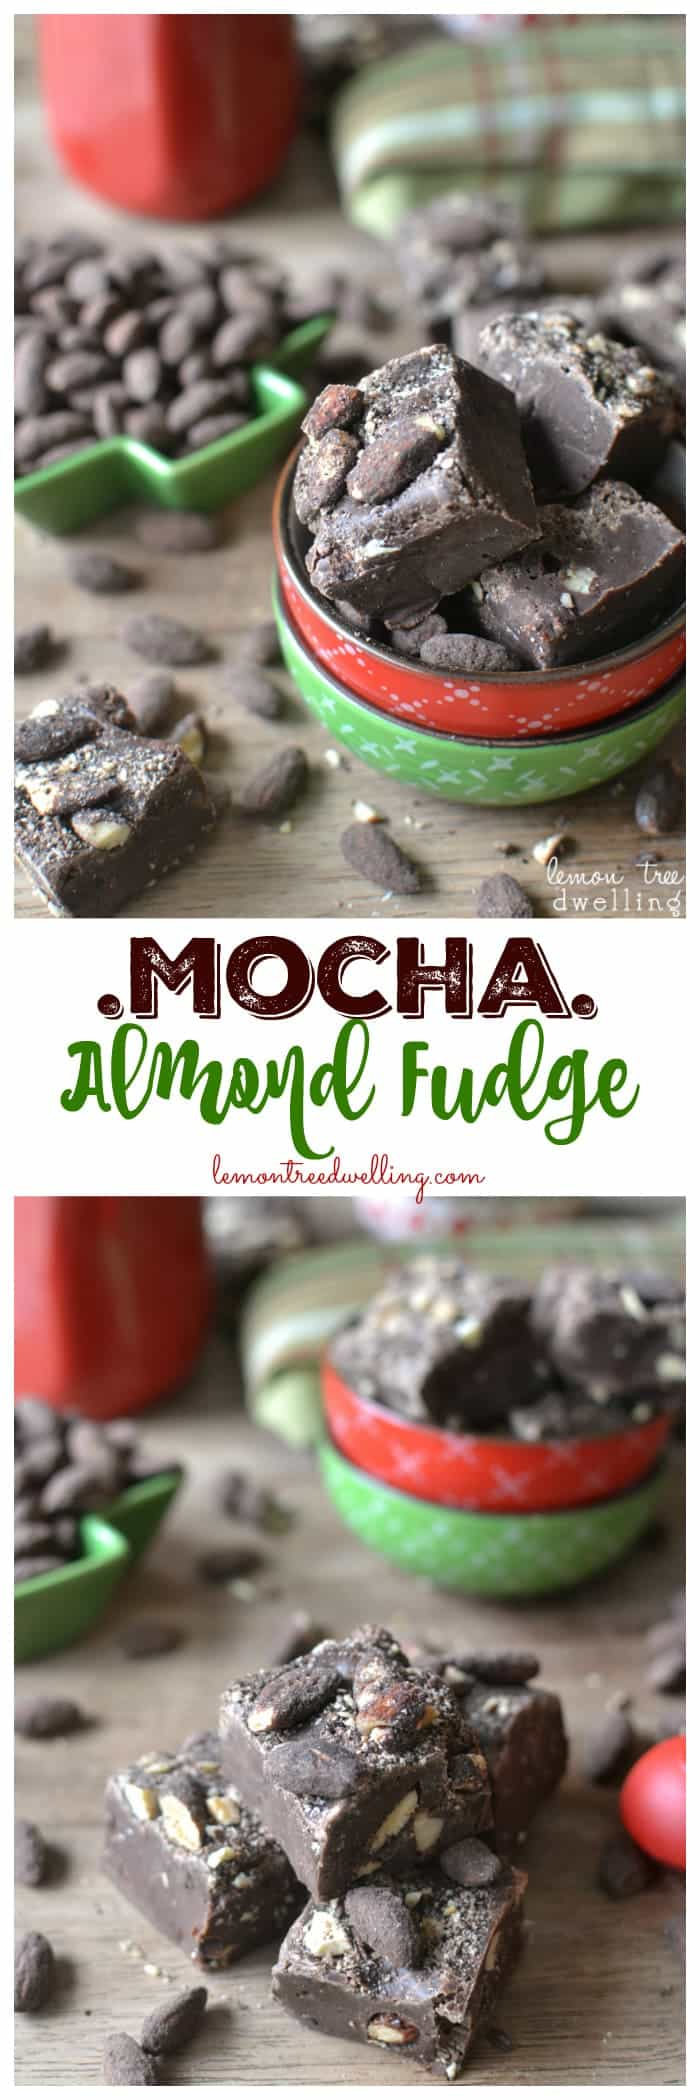 Mocha Almond Fudge is so rich and creamy! Laced with espresso and dark chocolate almonds, this 4 ingredient no-bake fudge is so easy to make and SO delicious!